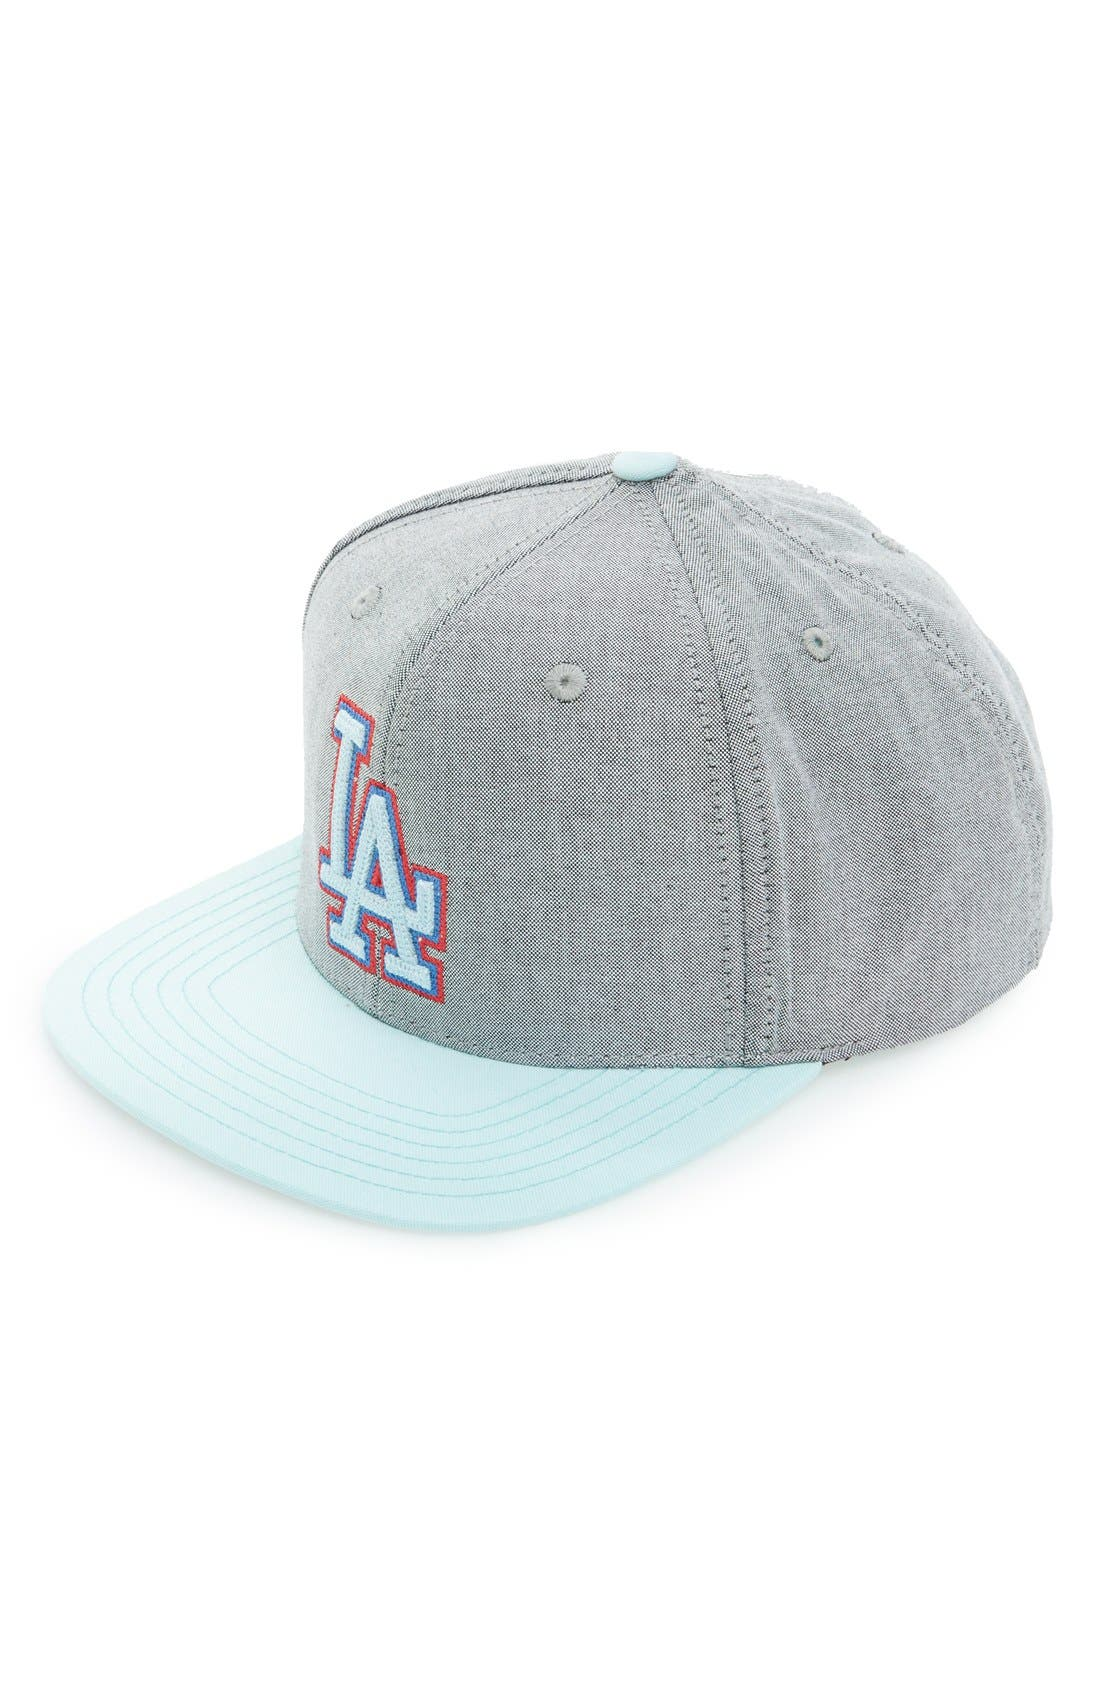 Main Image - American Needle 'Los Angeles Dodgers - South Beach' Baseball Cap